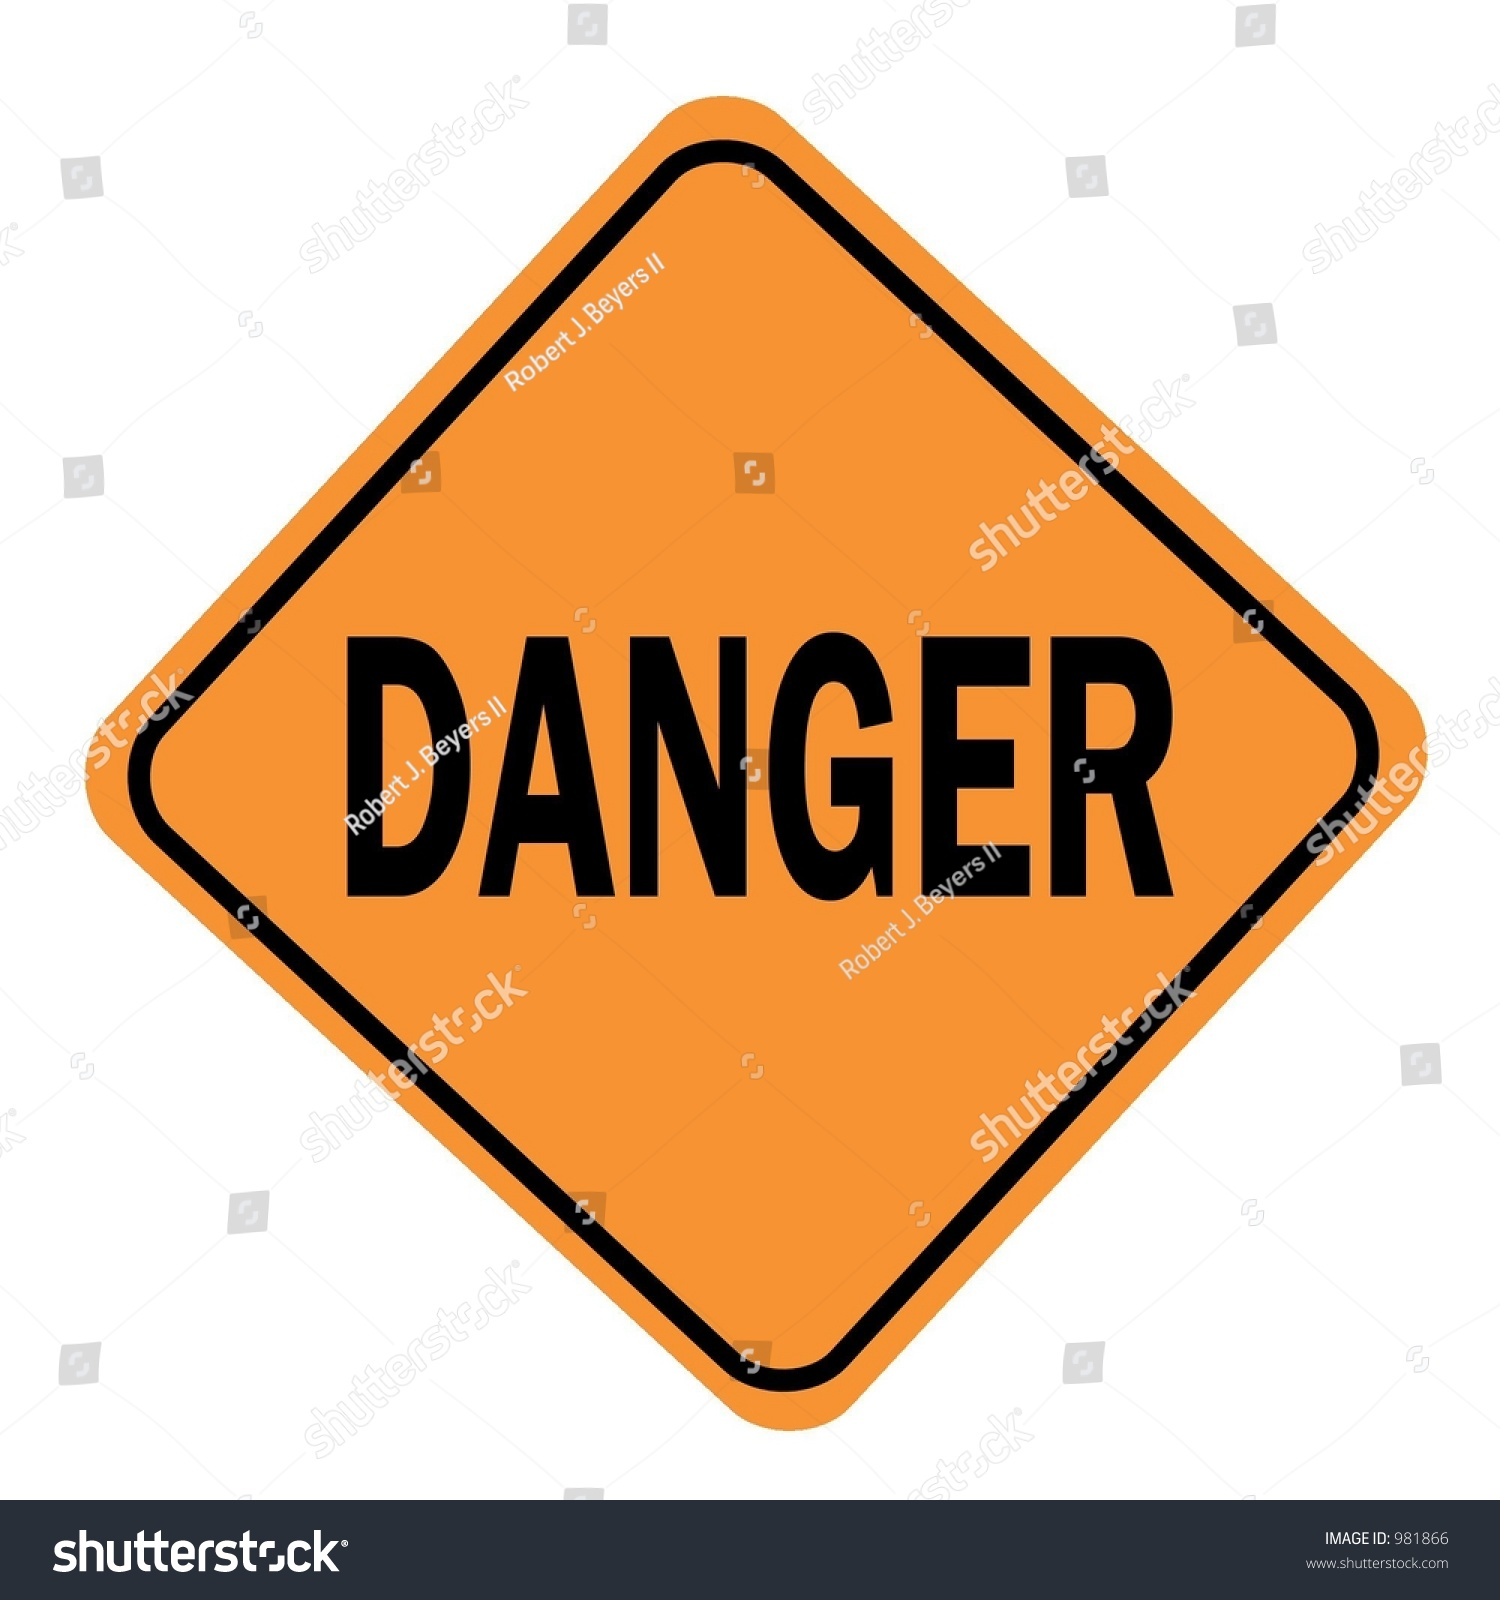 file warning svg sign diamond wiki wikipedia danger